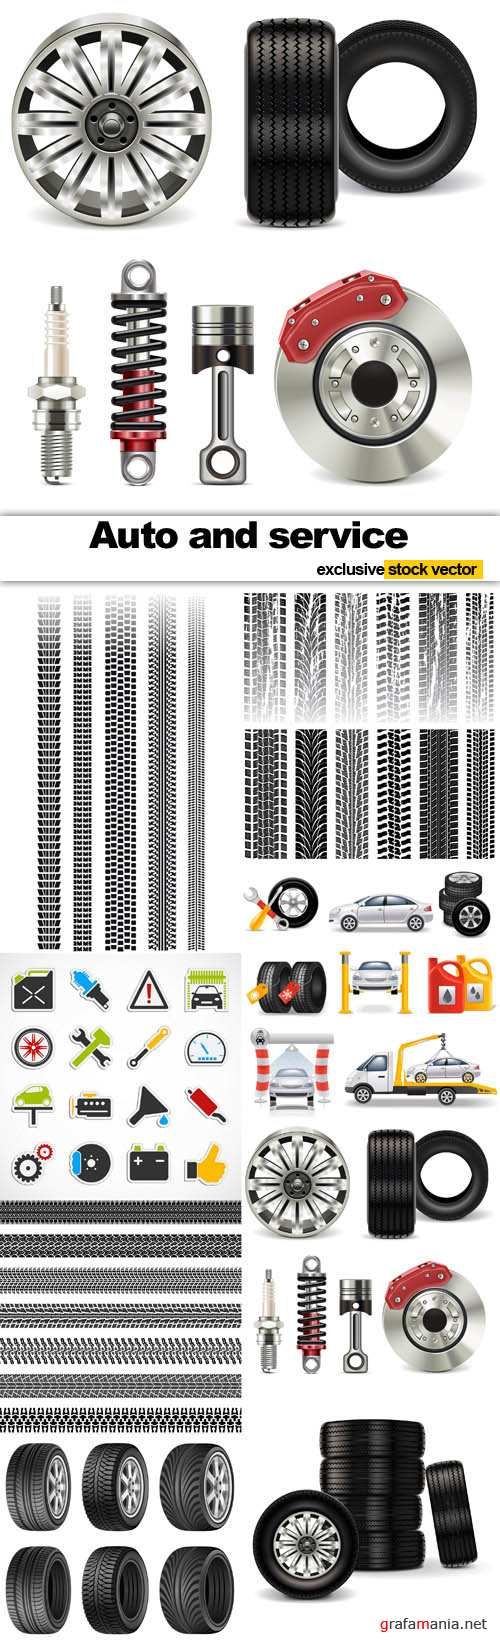 Auto and Service - Vector Stock